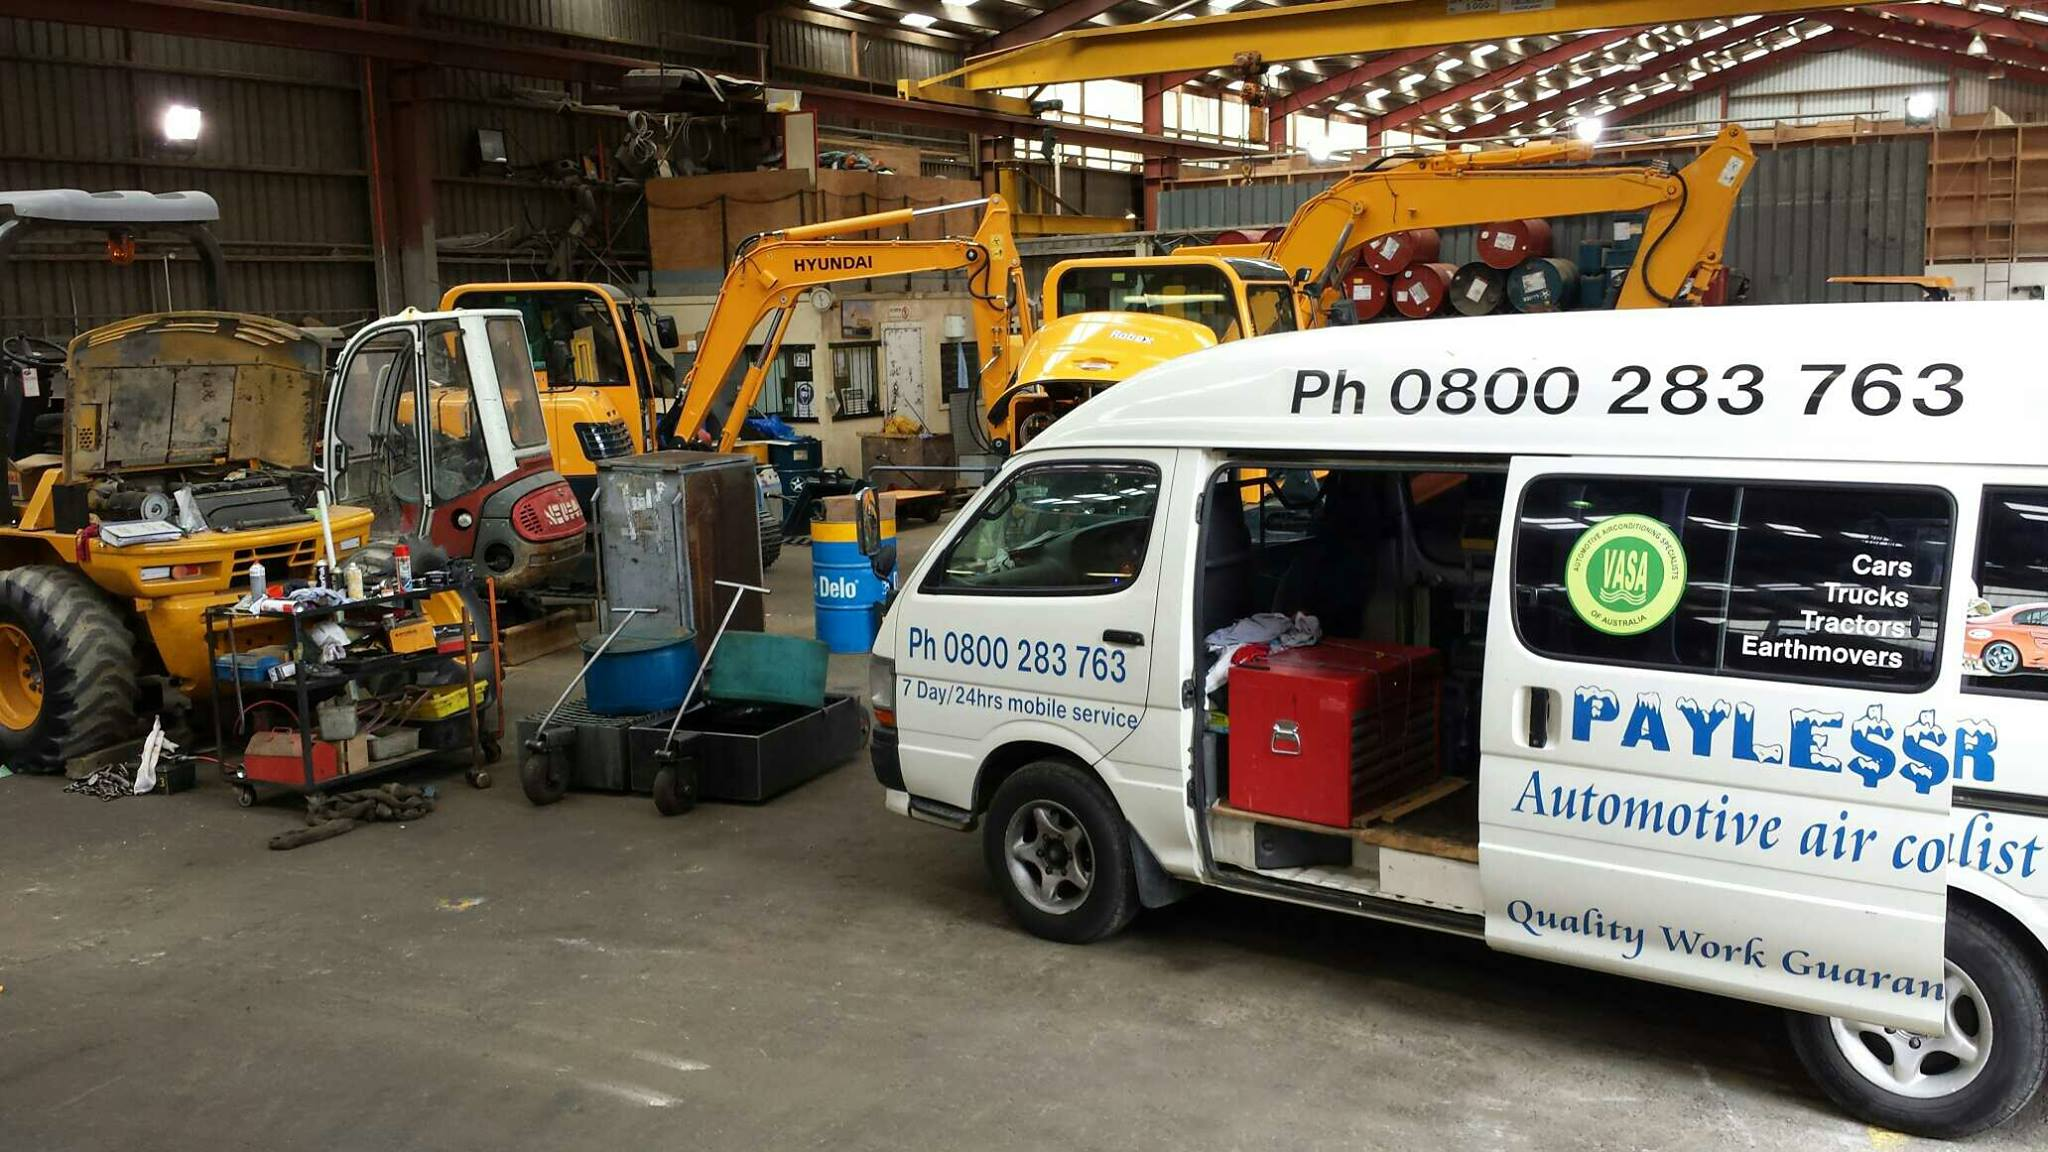 Air Conditioning In Automobiles Mobile Automotive Air Conditioning - Cool cars auckland